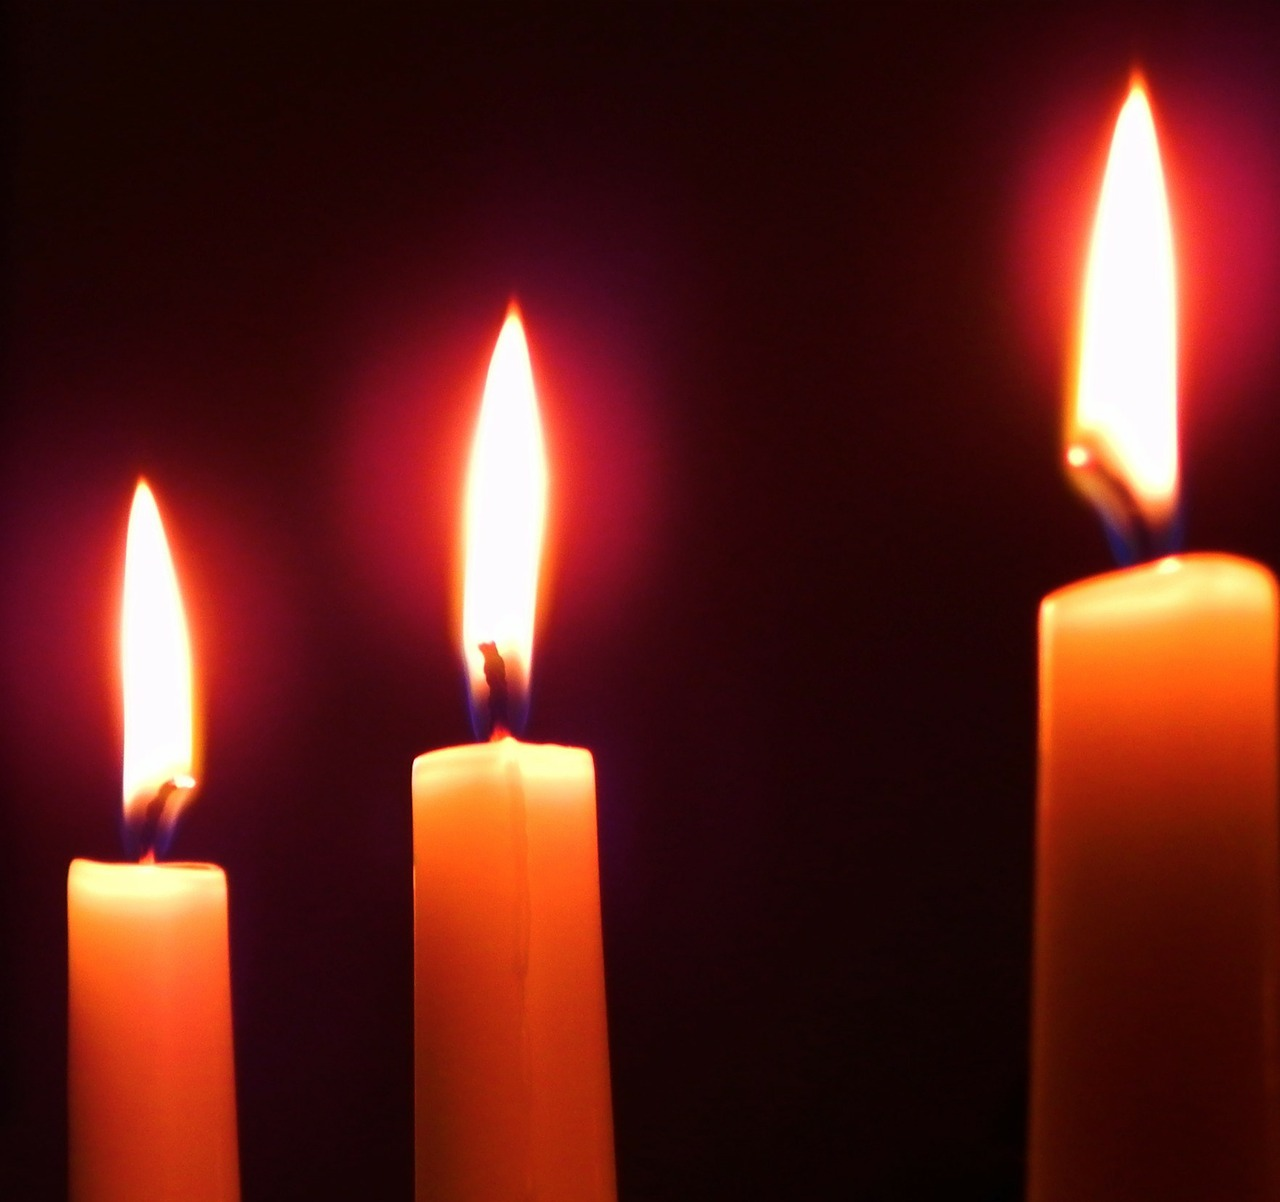 Three lit candles are bad luck https://pixabay.com/en/candles-flames-darkness-three-17903/